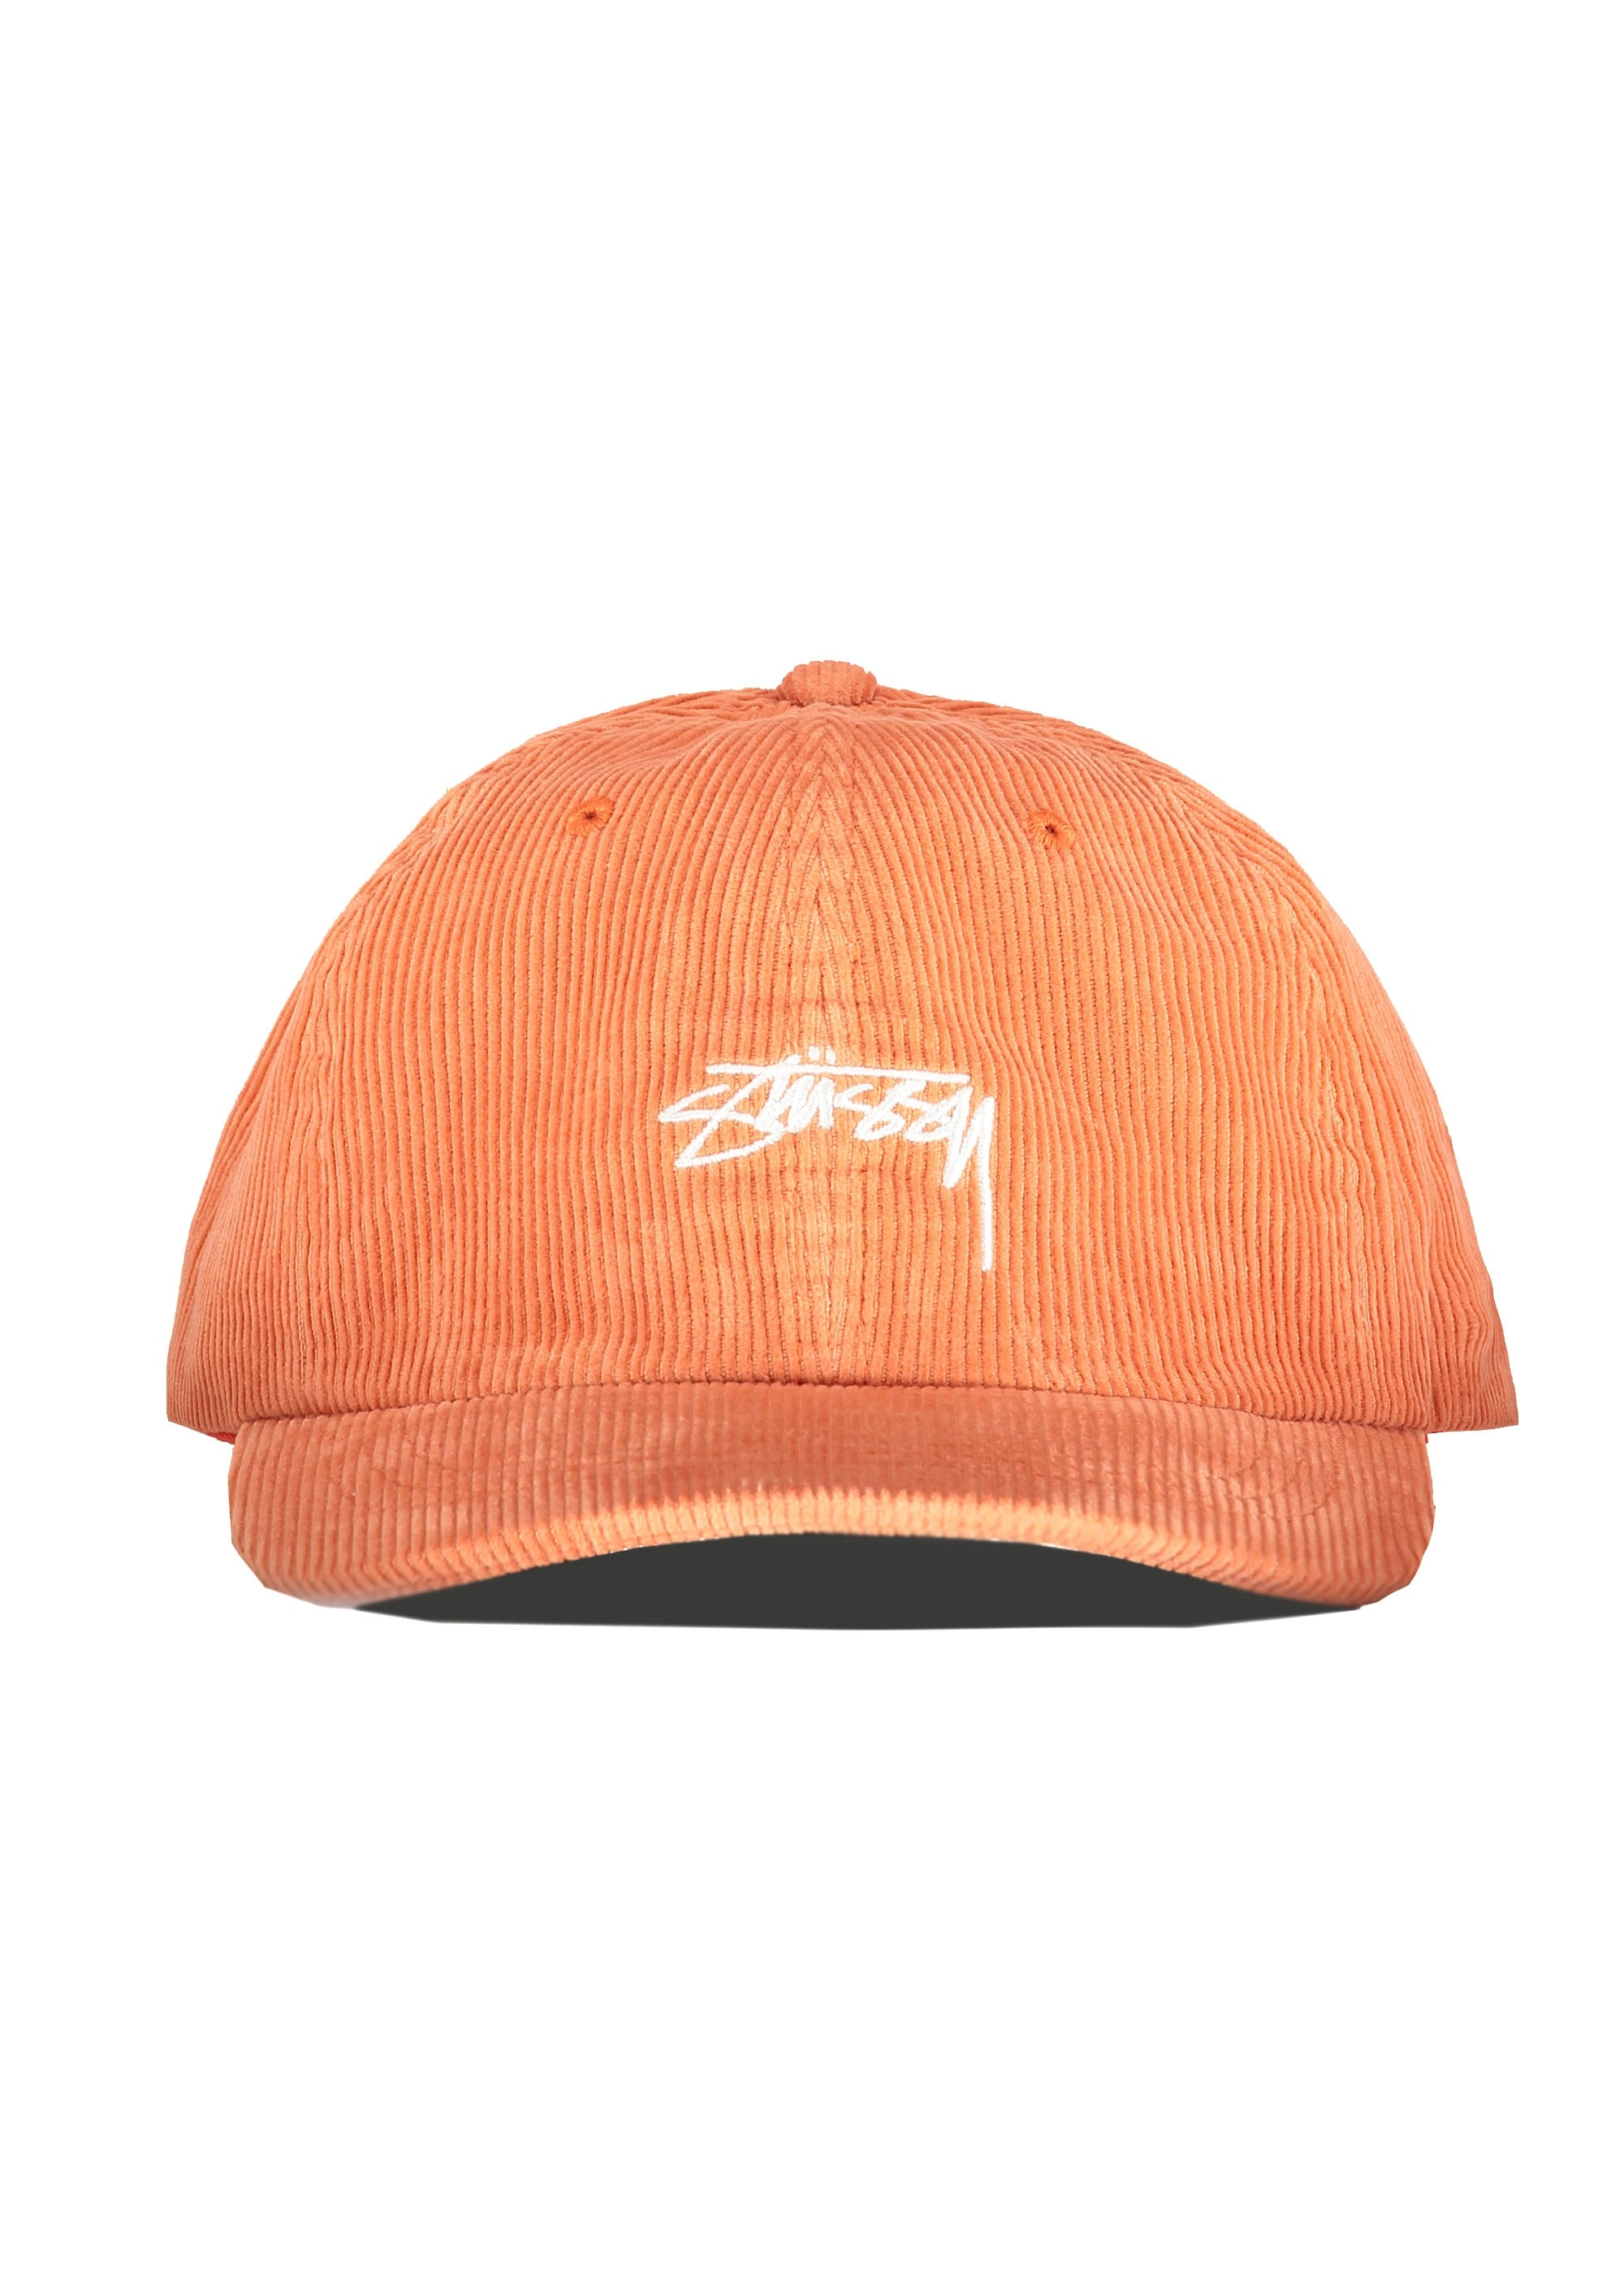 950b20b8de2 Stussy Corduroy Low Pro Cap - Orange - Triads Mens from Triads UK